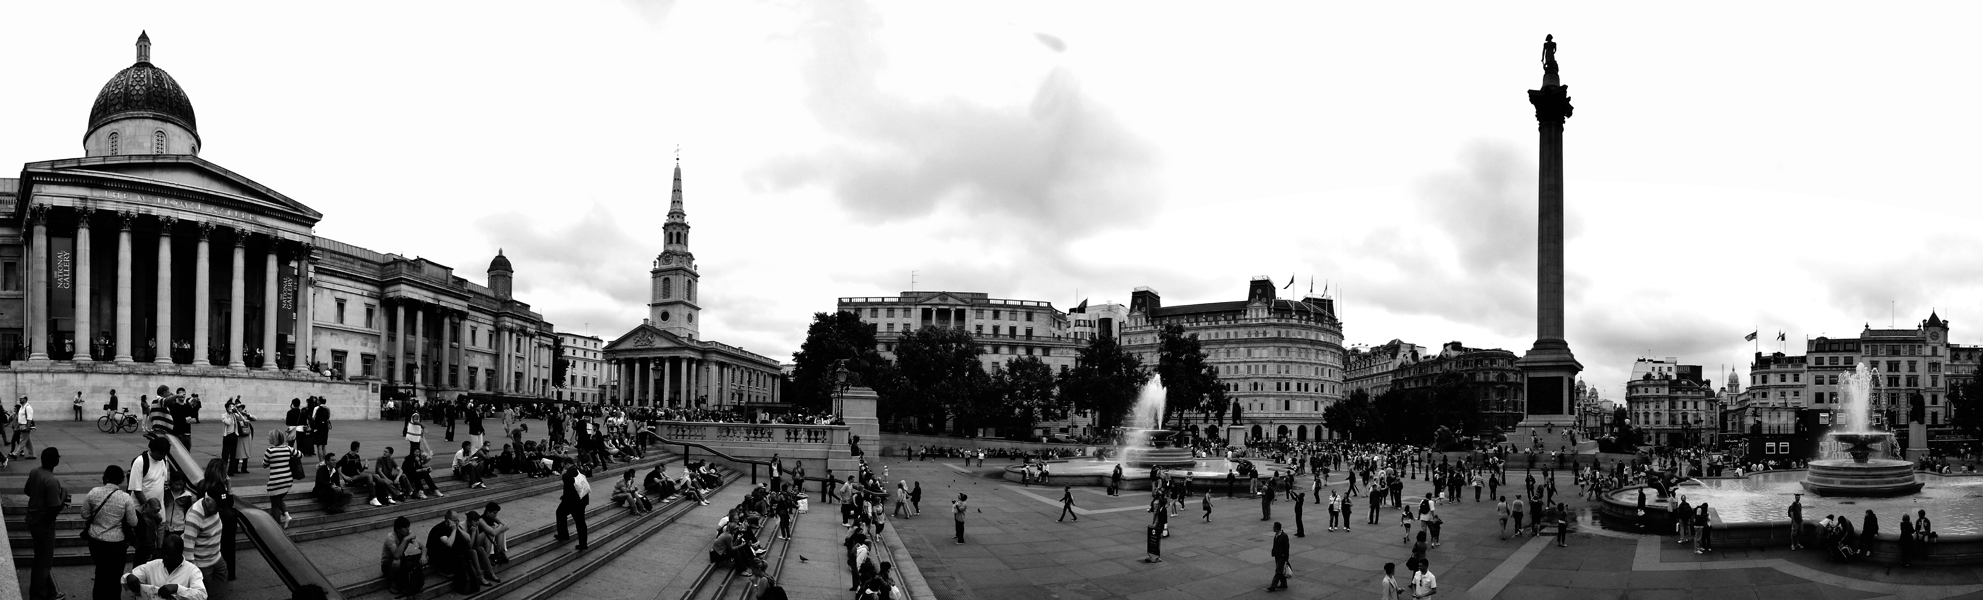 Photo noir et blanc panoramique de Trafalgar Square - Londres